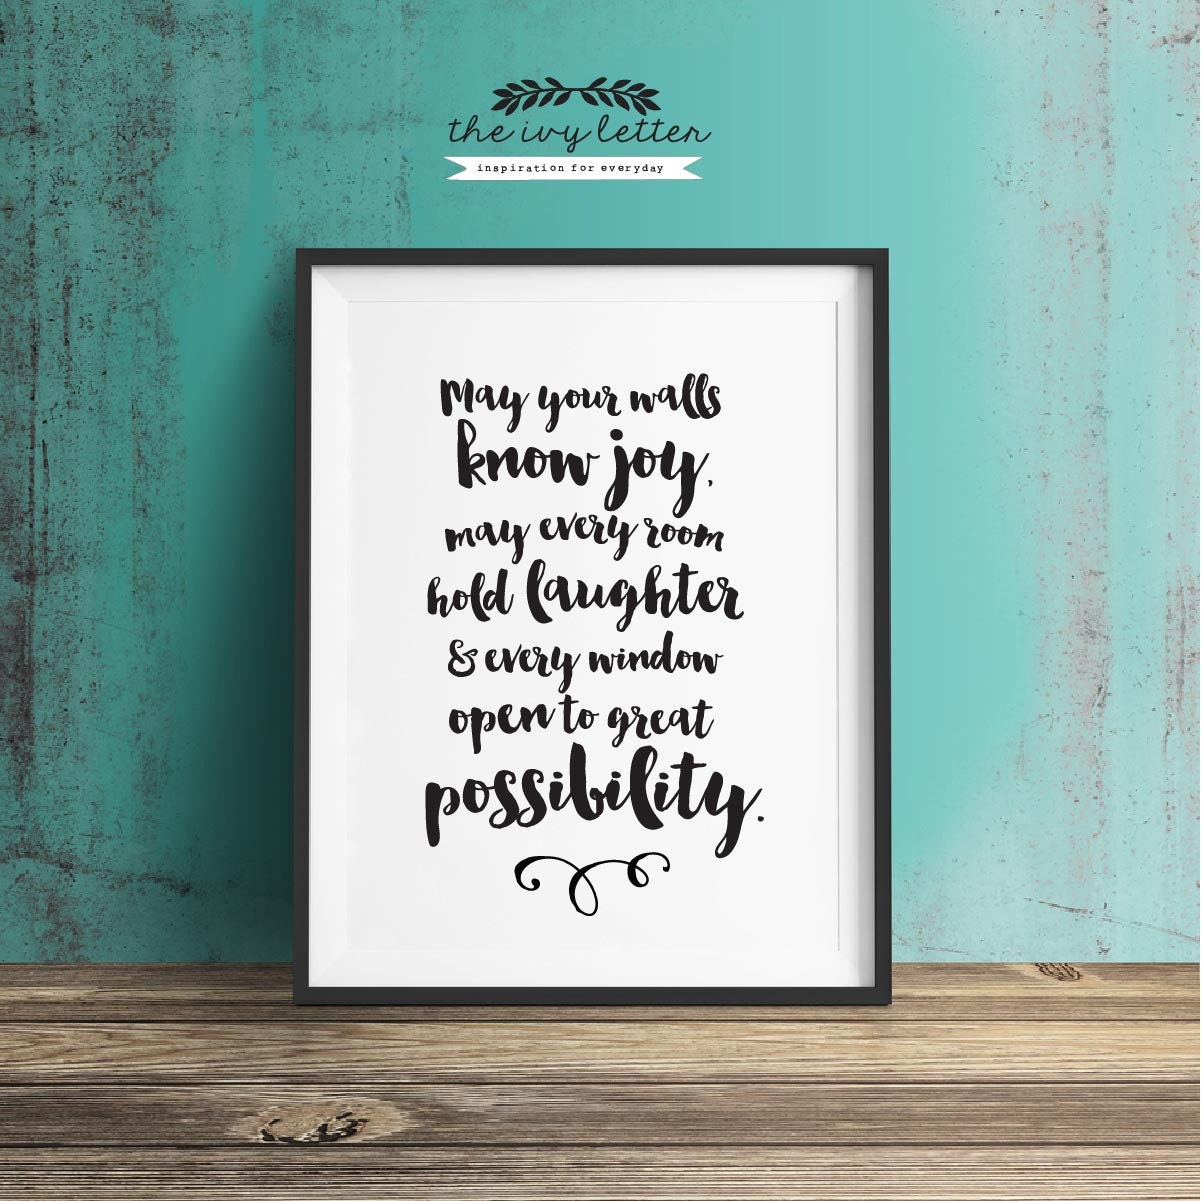 May Your Walls Know Joy Printable Wall Art Quotes